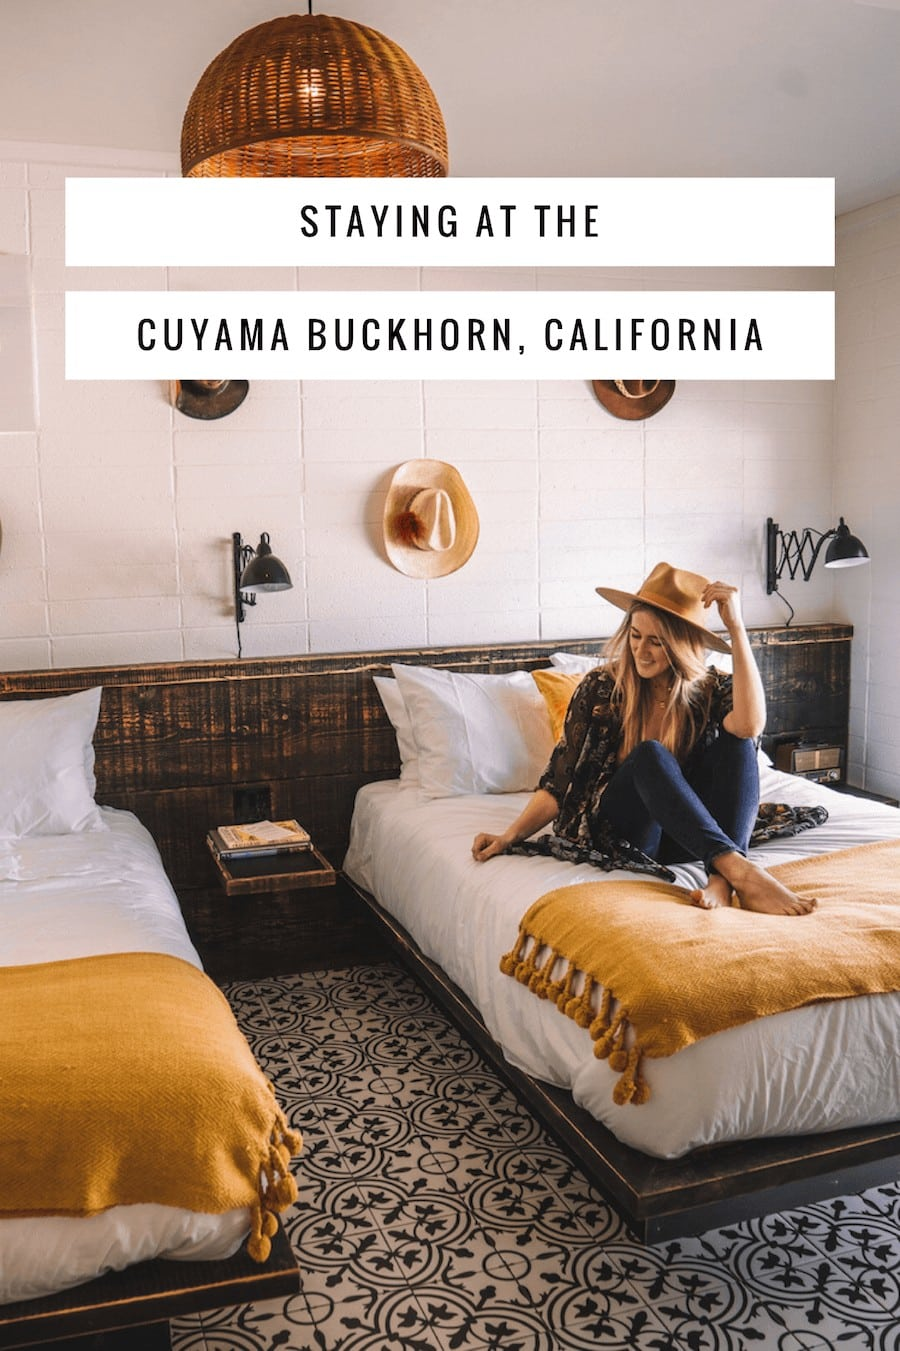 Girl sitting on bed in hotel room at the Cuyama Buckhorn